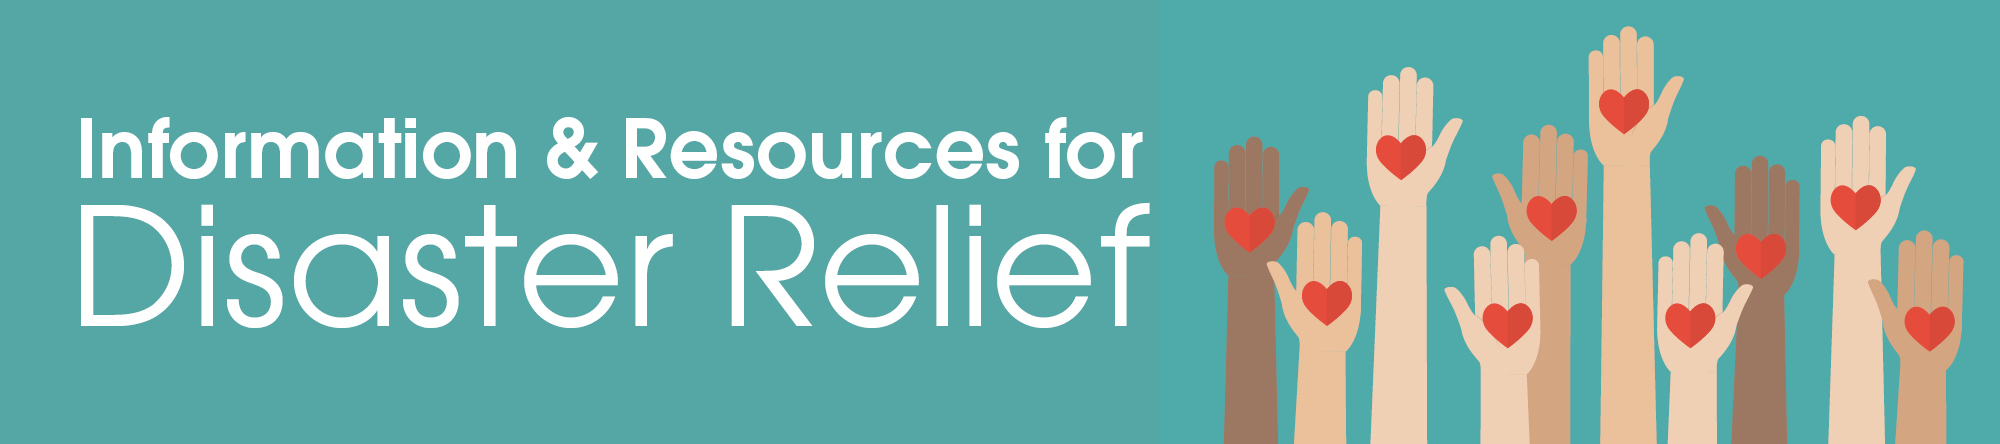 Information & Resources for Disaster Relief